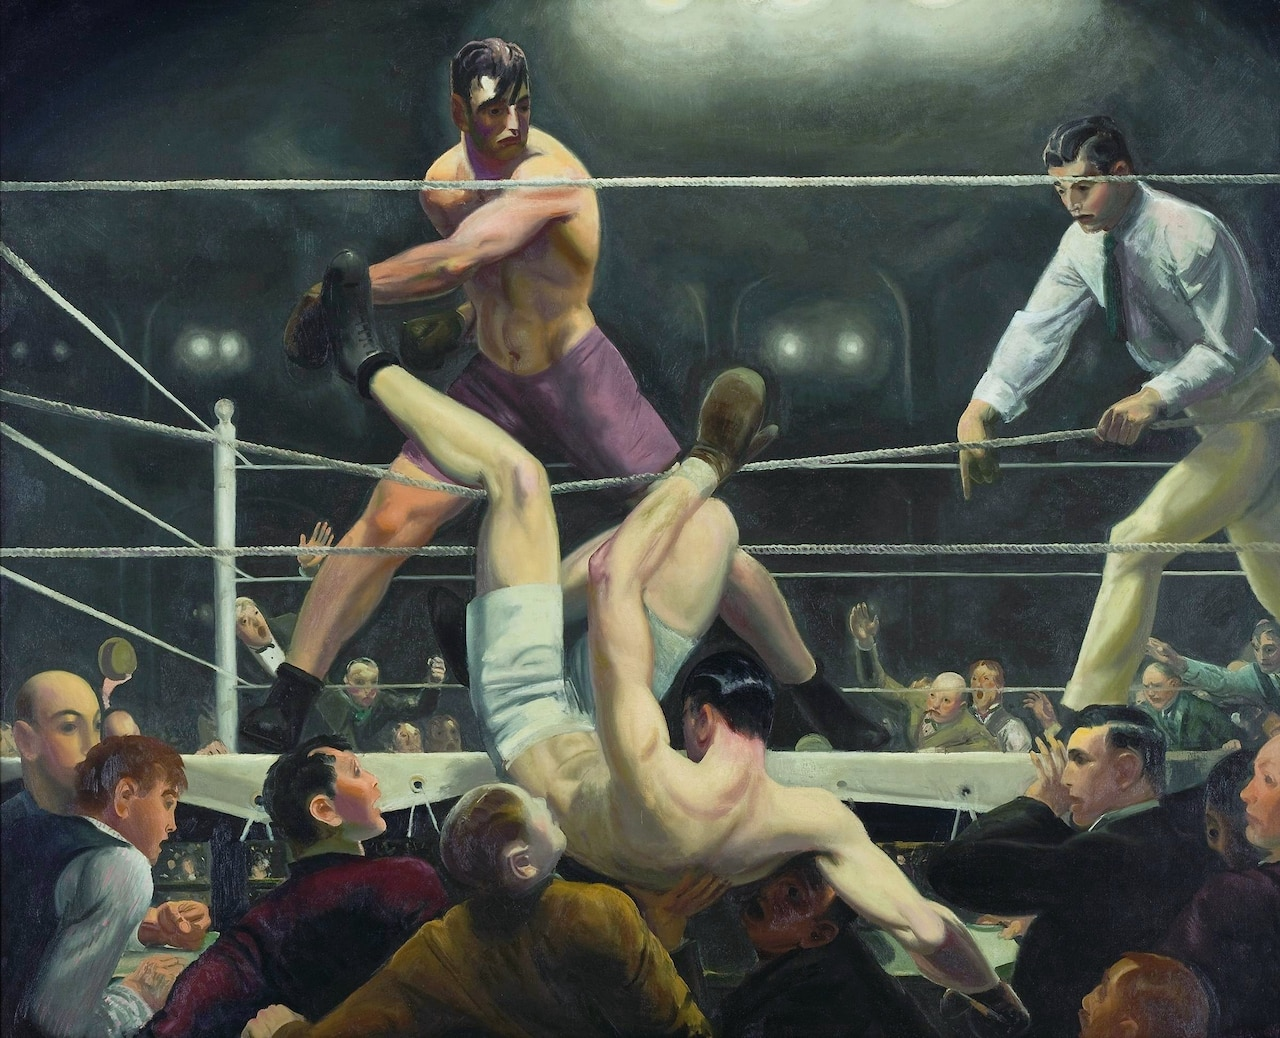 A boxer knocks his opponent from the ring.